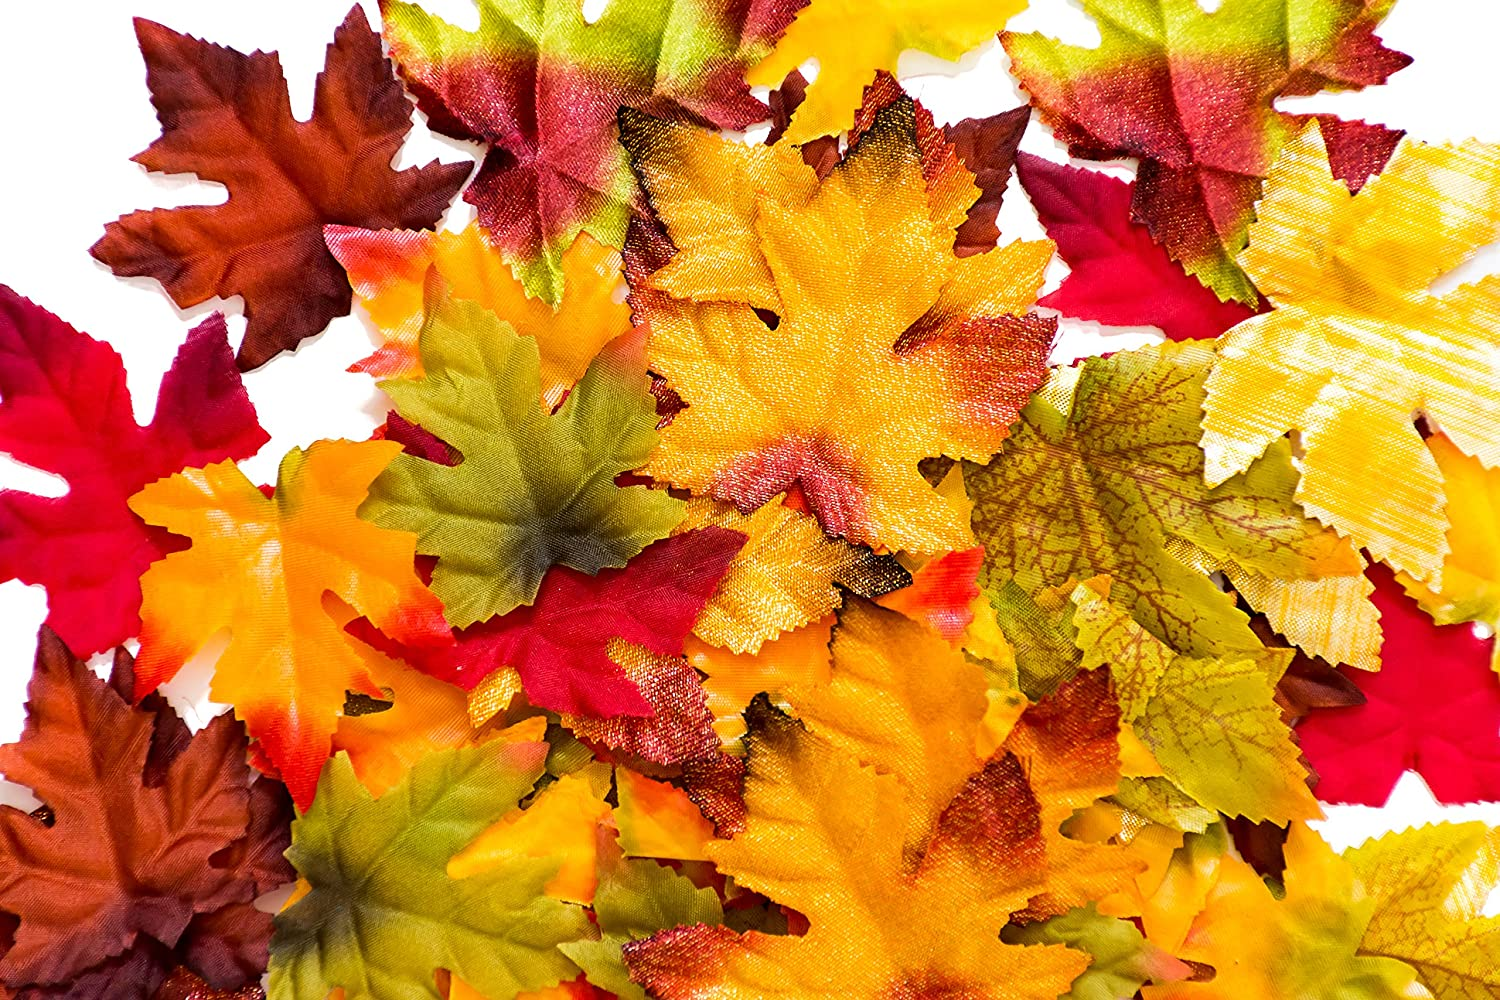 Amazon.com: 150 Artificial Fall Leaves in a Variety of Autumn Colors